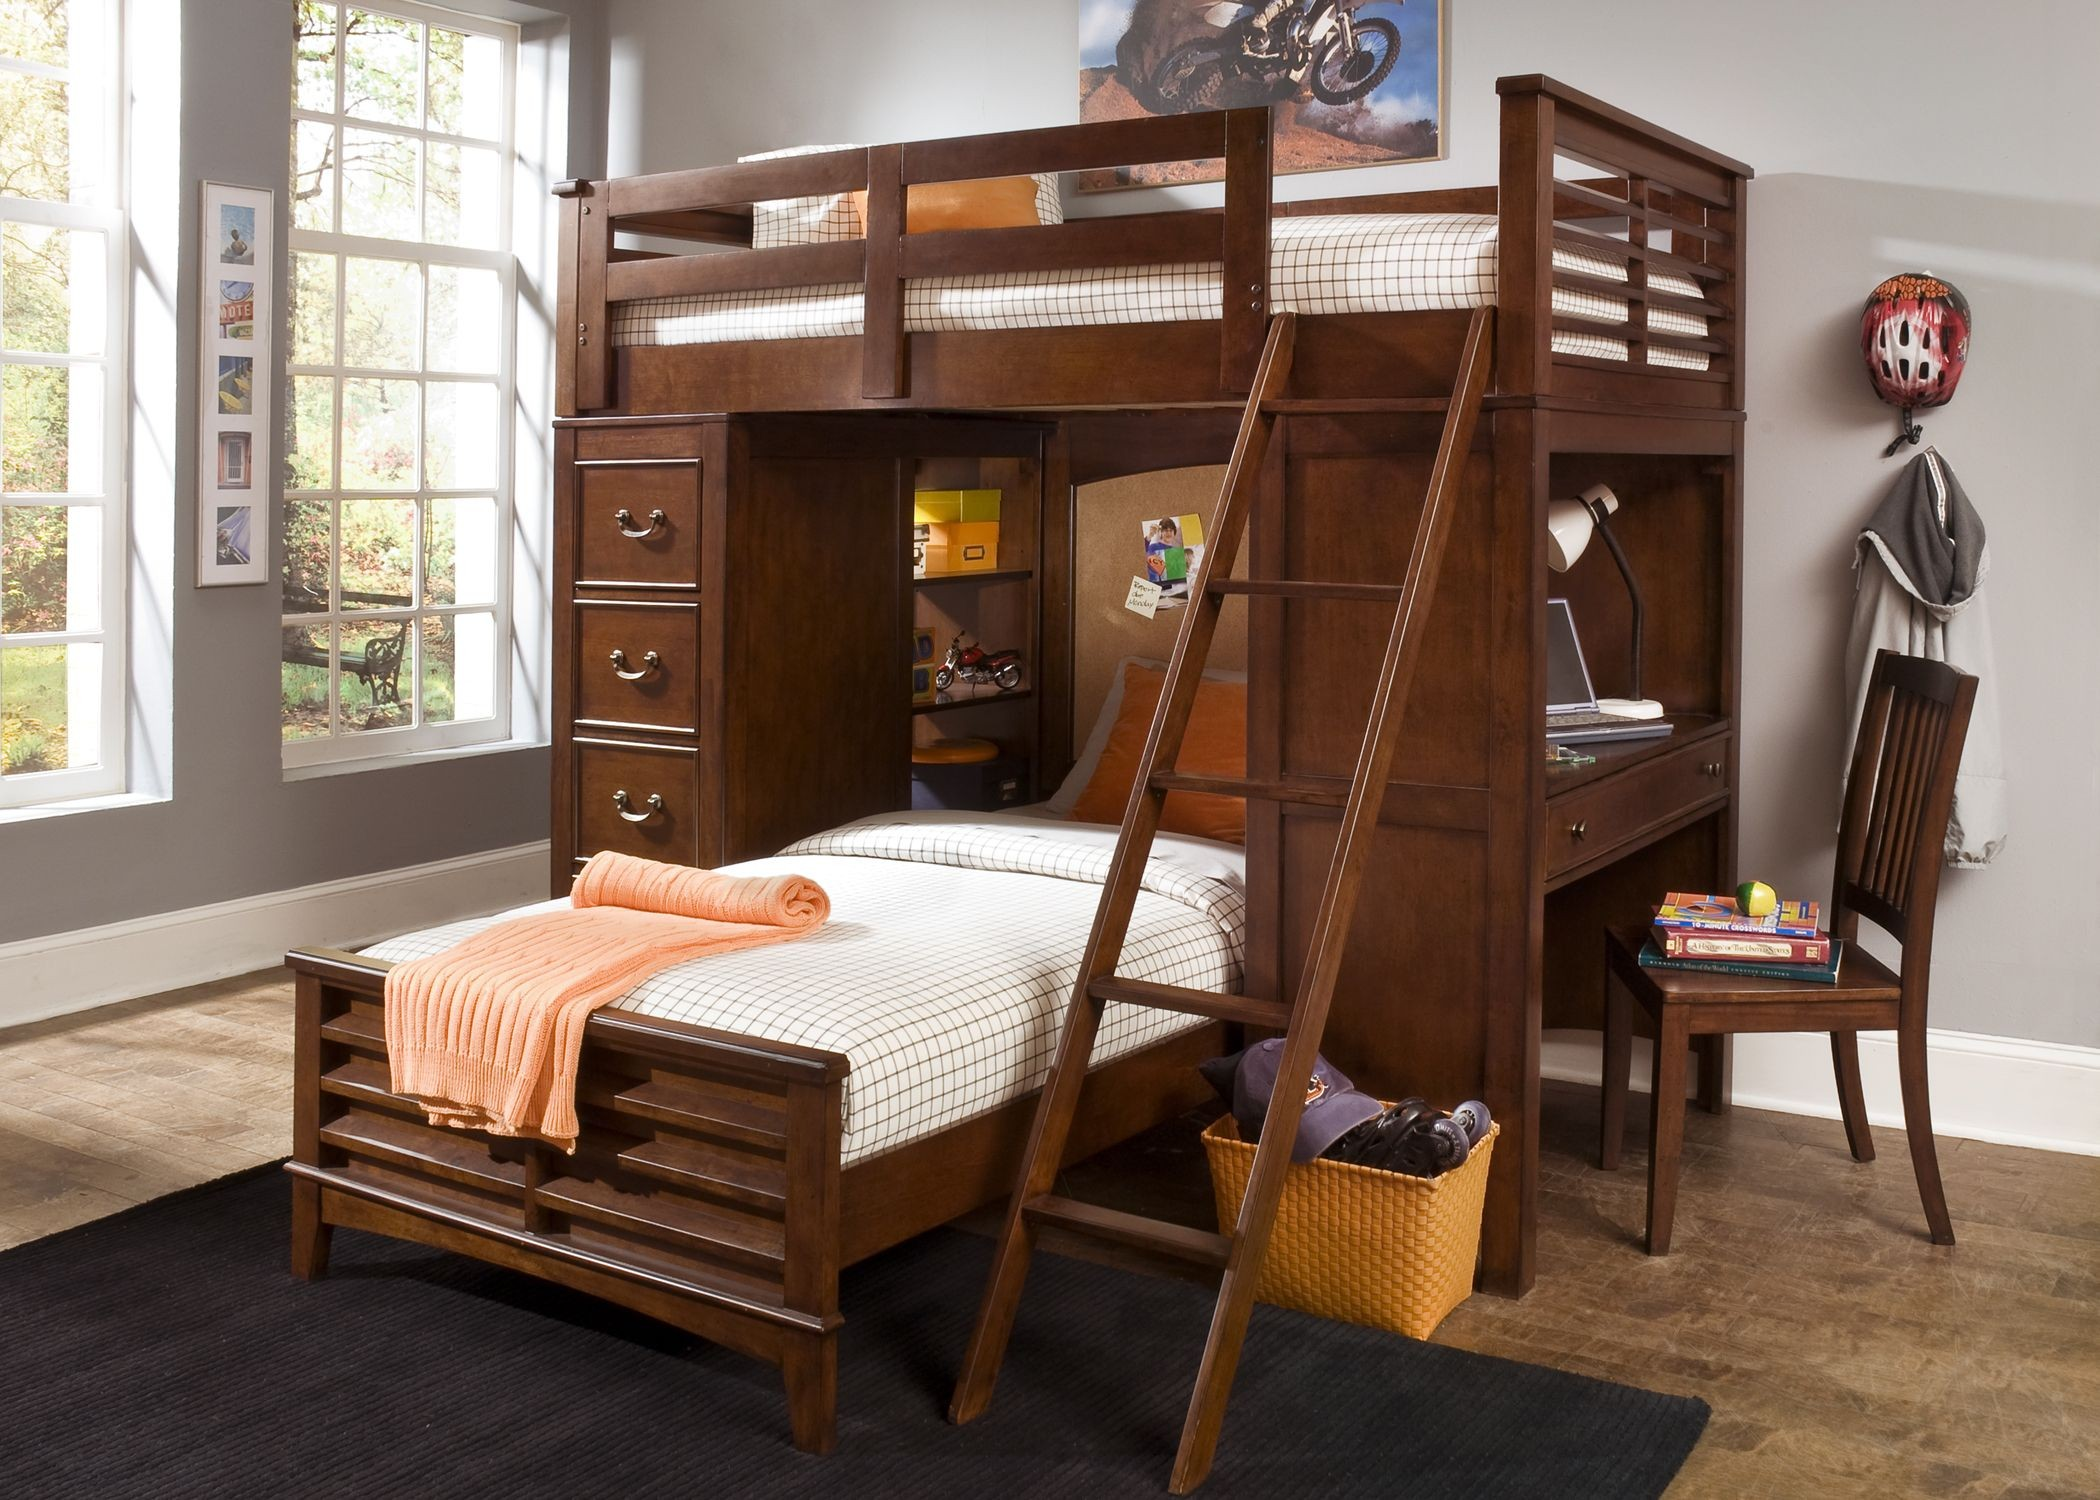 28 bedroom furniture cork bedroom furniture cork carpentry